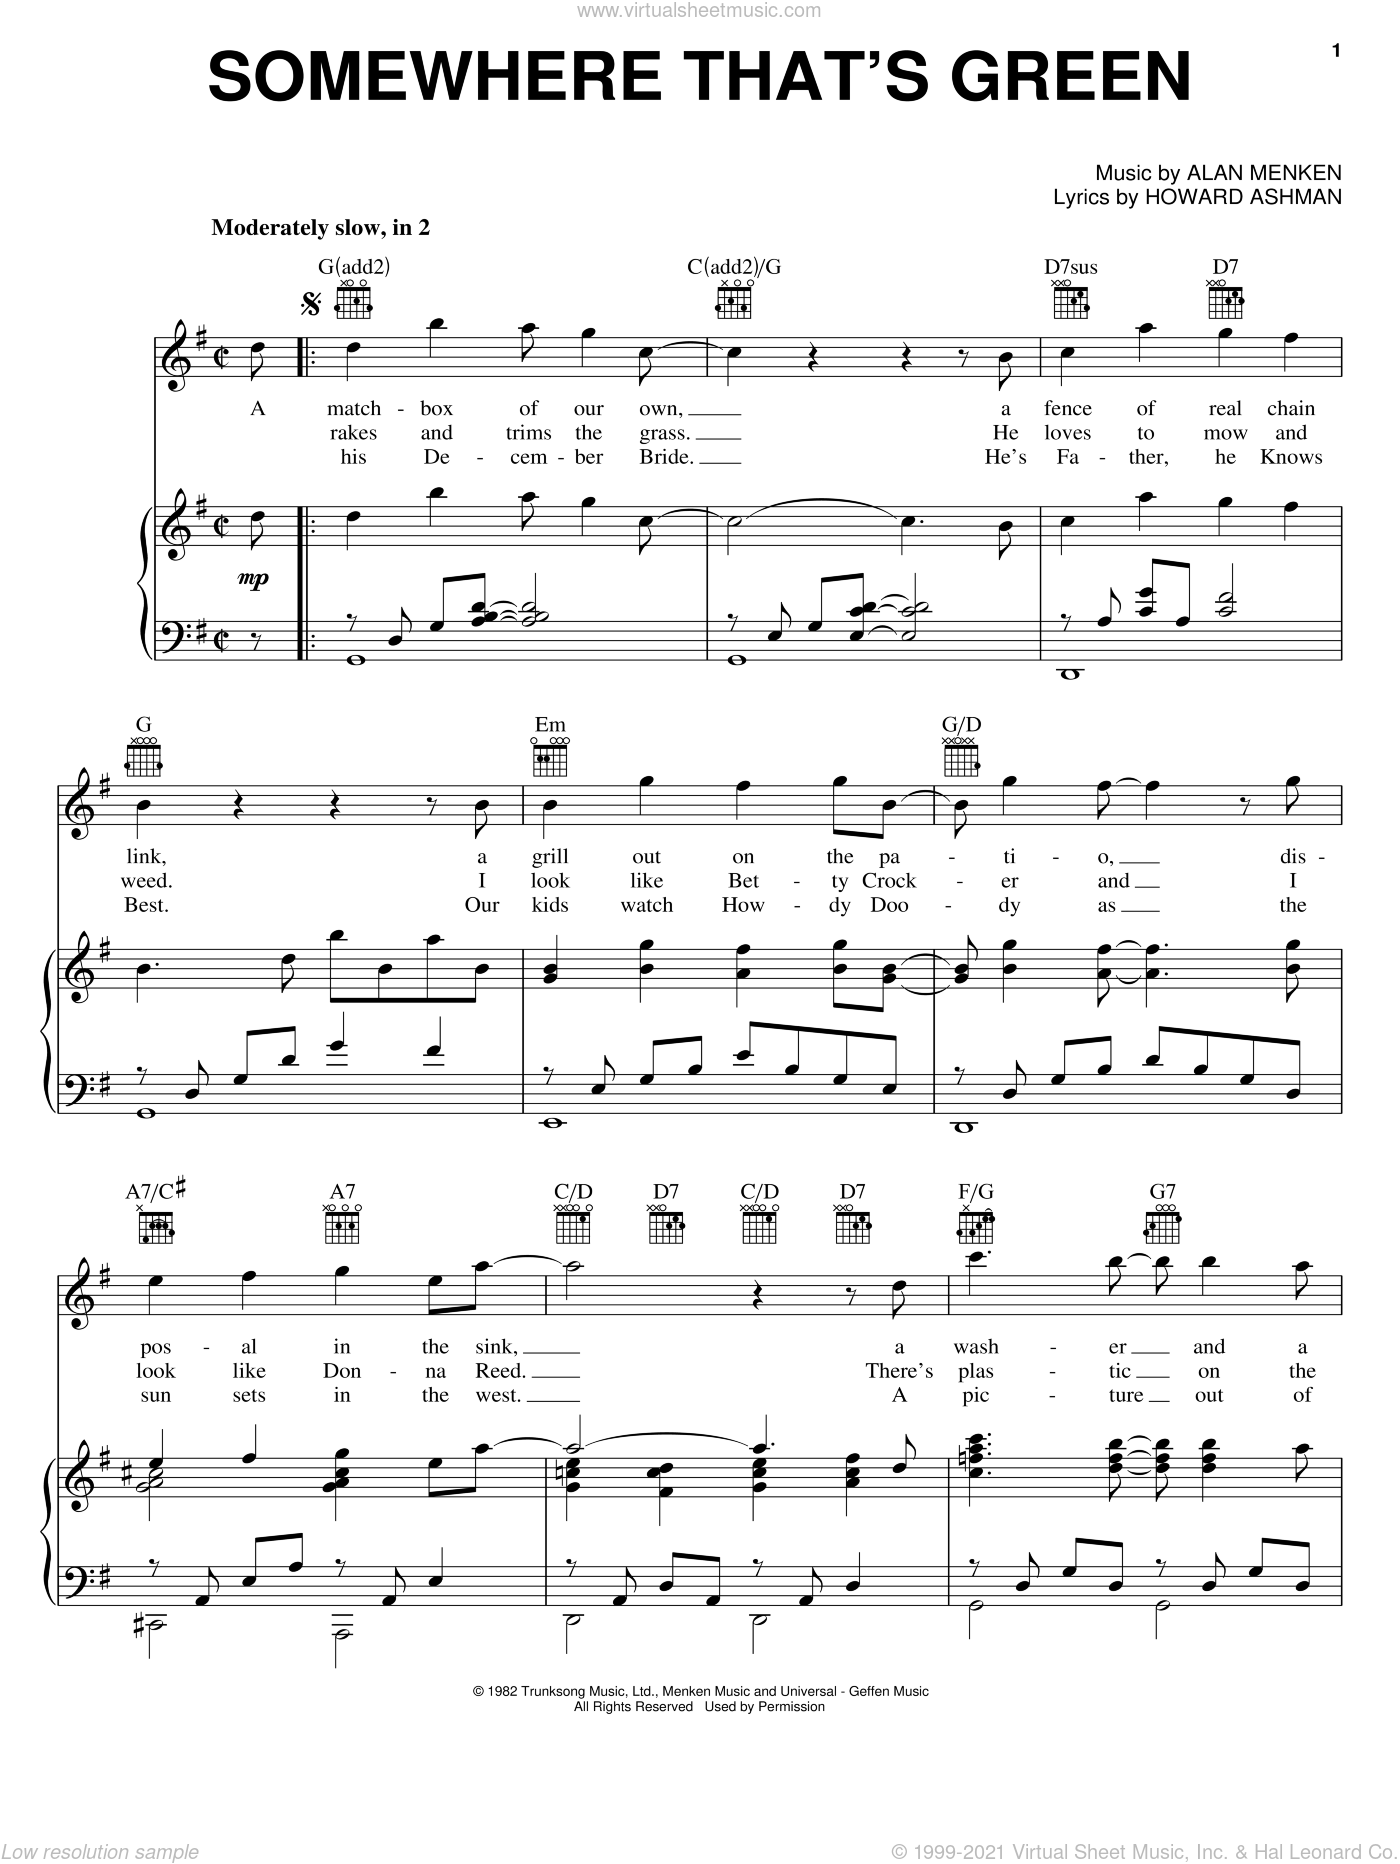 Somewhere That's Green sheet music for voice, piano or guitar by Alan Menken and Howard Ashman. Score Image Preview.